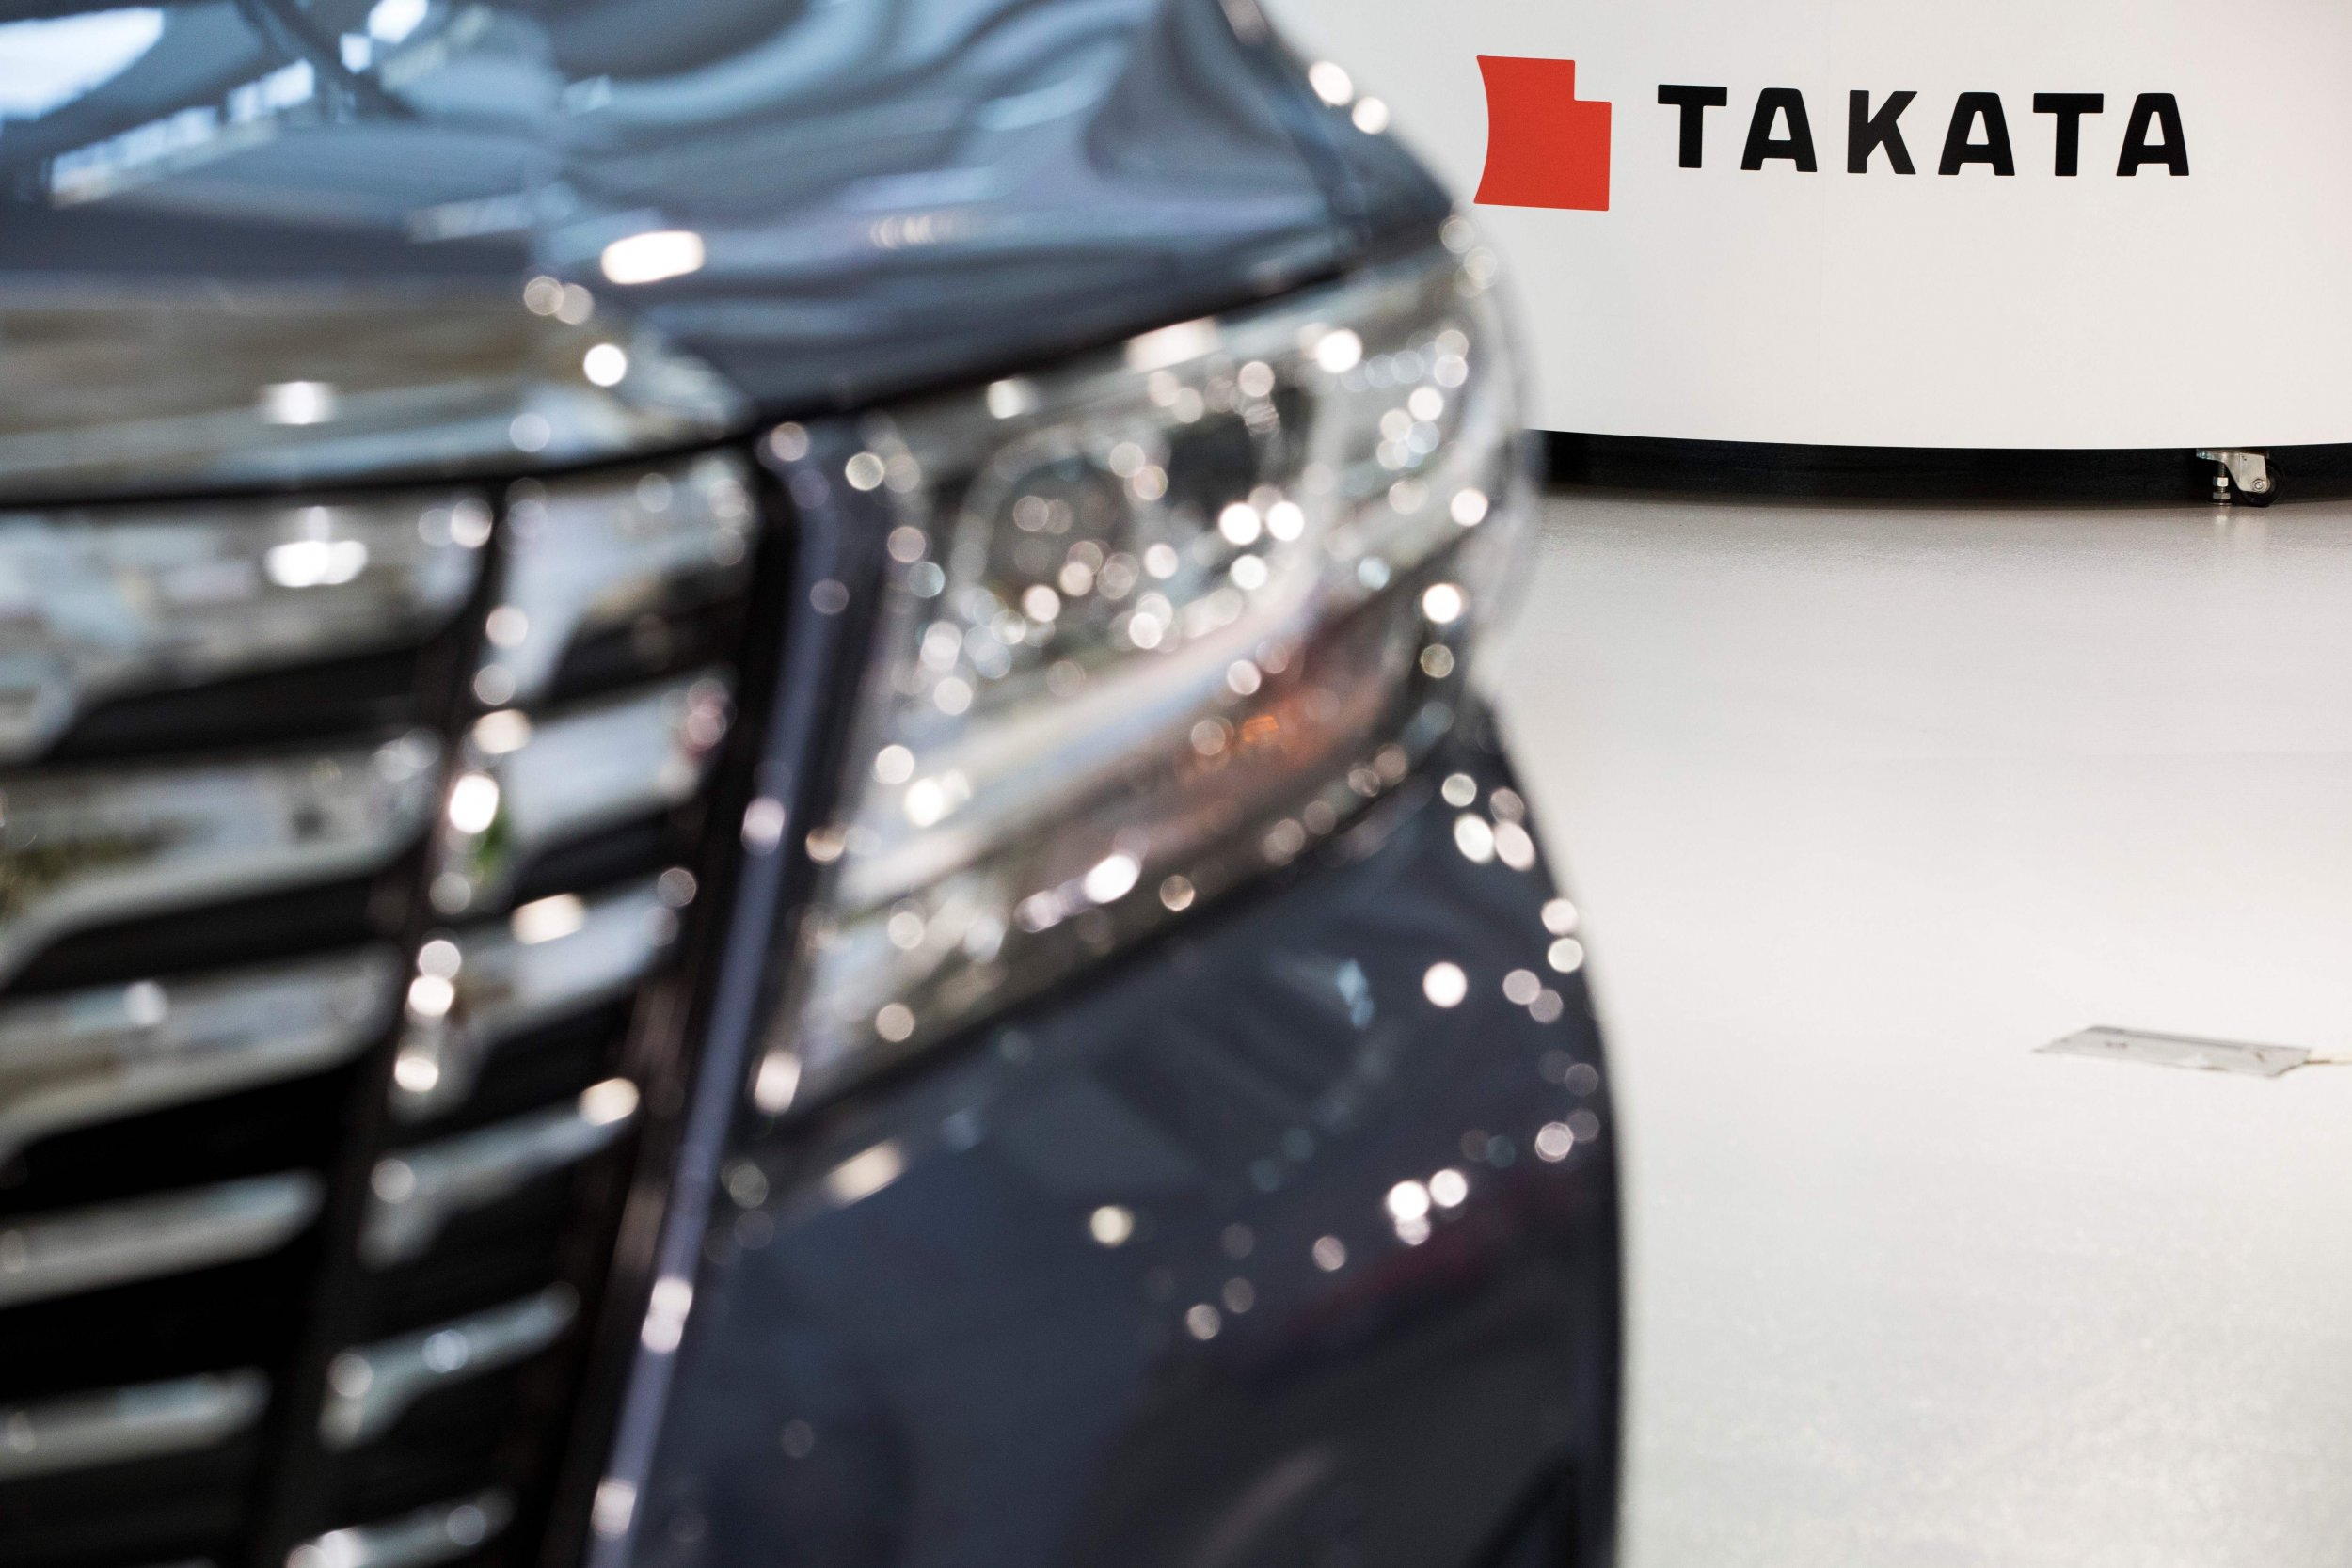 takata car and logo